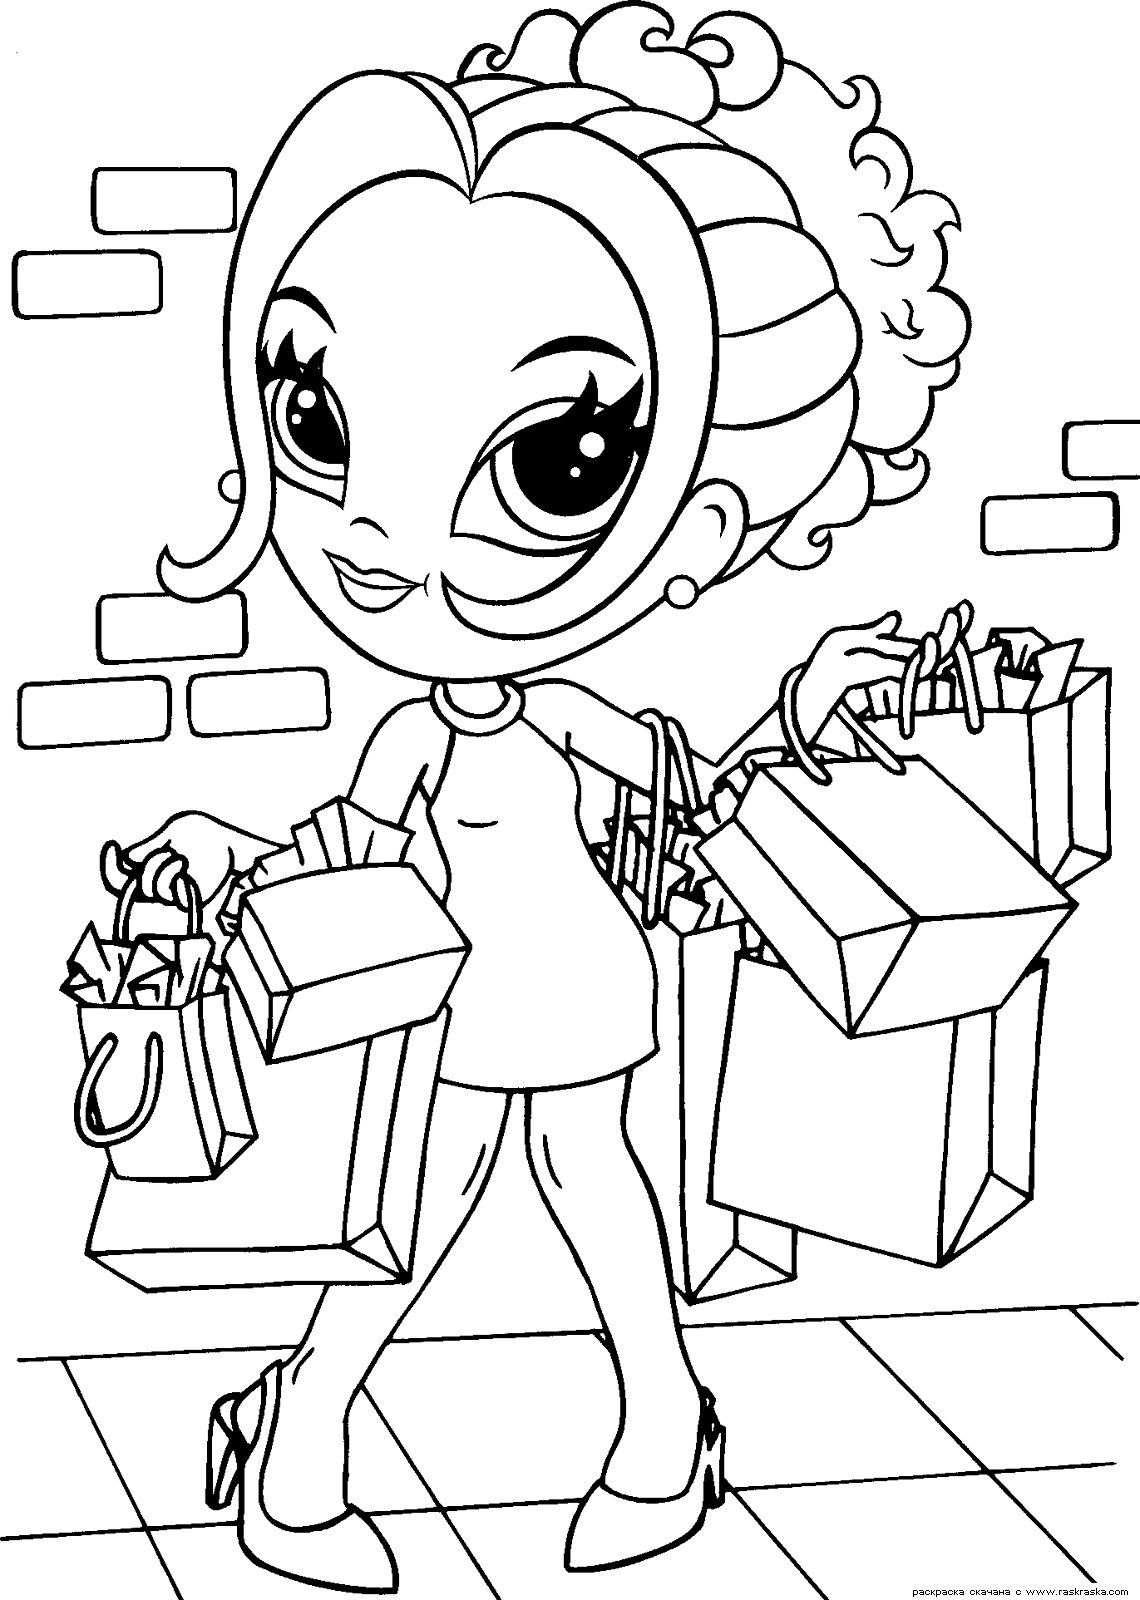 4coloringcom free online coloring pages